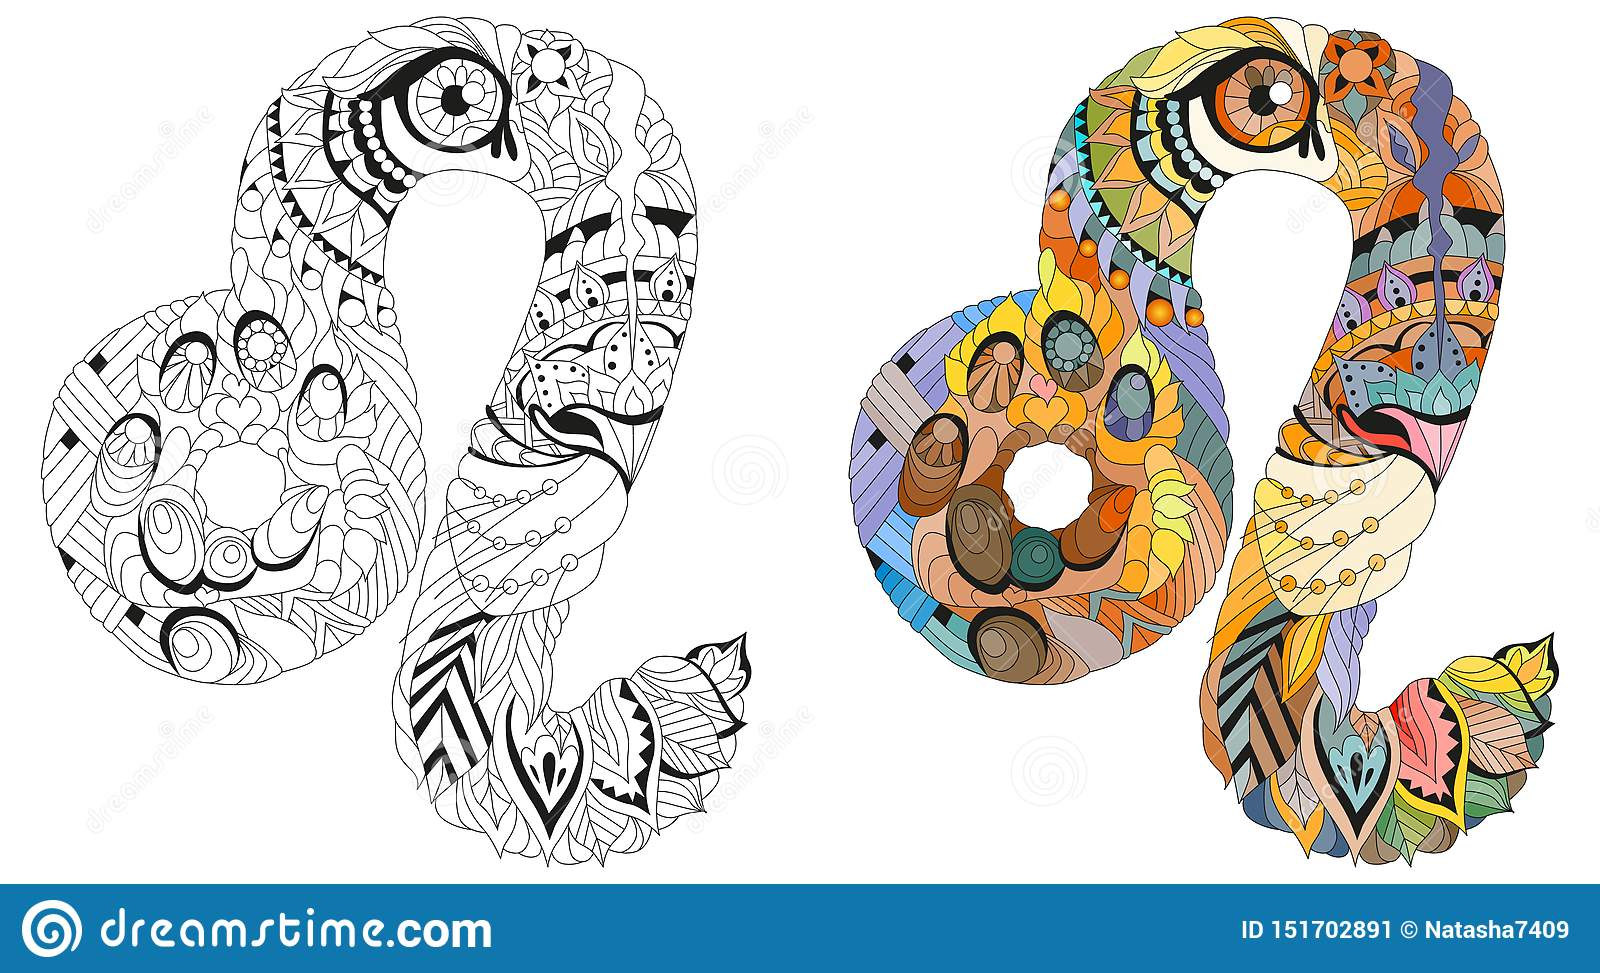 Leo Zodiac Sign Cute Cartoon Lion Character Retro Zentangle Stylized In Vector Stock Vector Illustration Of Circle Element 151702891 Make social videos in an instant: https www dreamstime com leo zodiac sign astrology concept art tattoo design color outline set cute cartoon lion character retro zentangle stylized image151702891